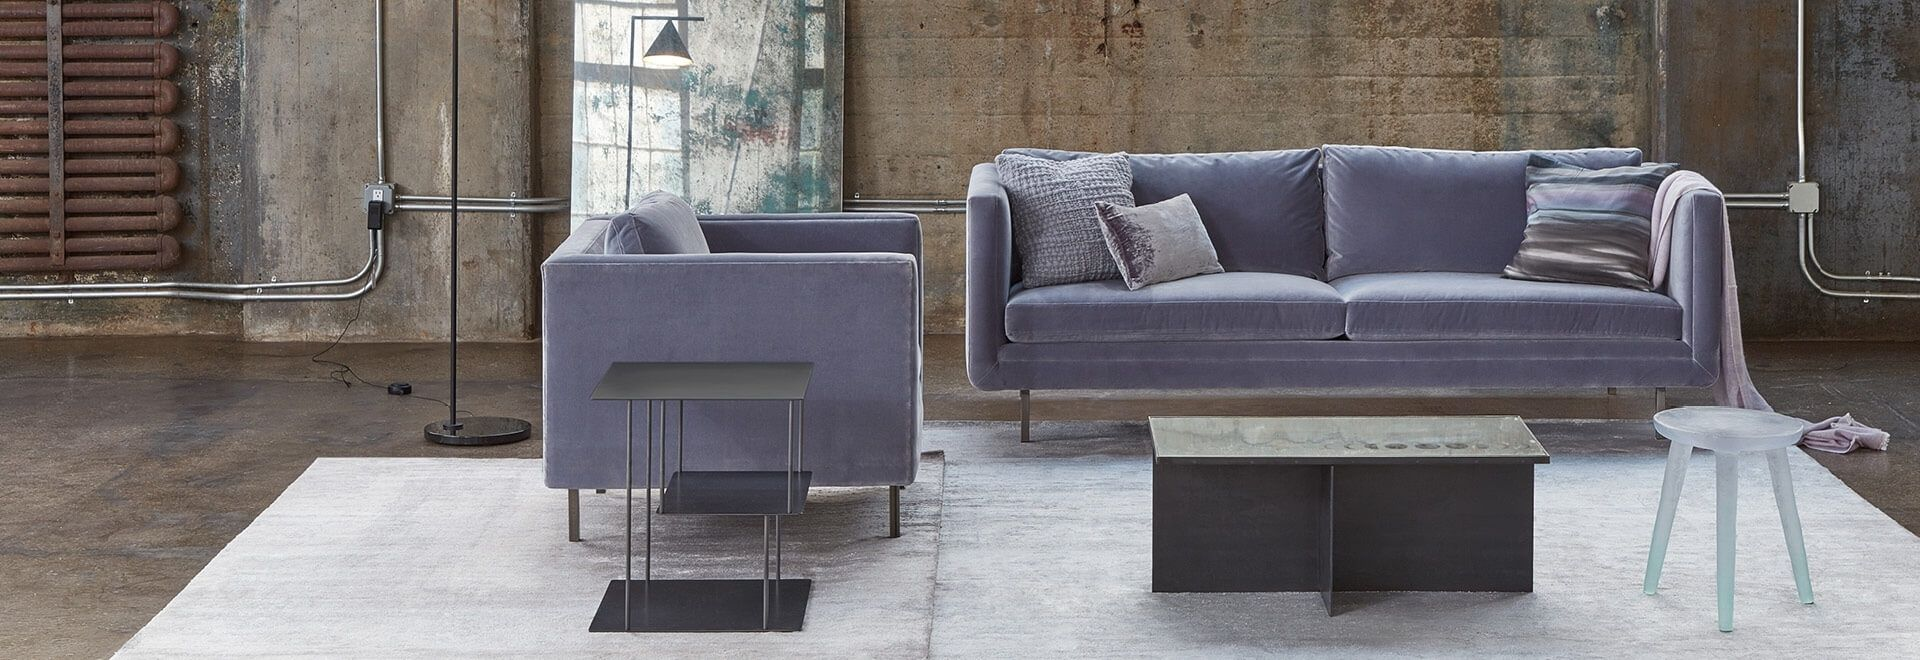 modern end tables and side home carpet coffee fall updates hero white accent living room violet armchair love seat sit atop rug accented mirrored gunmetal console table with